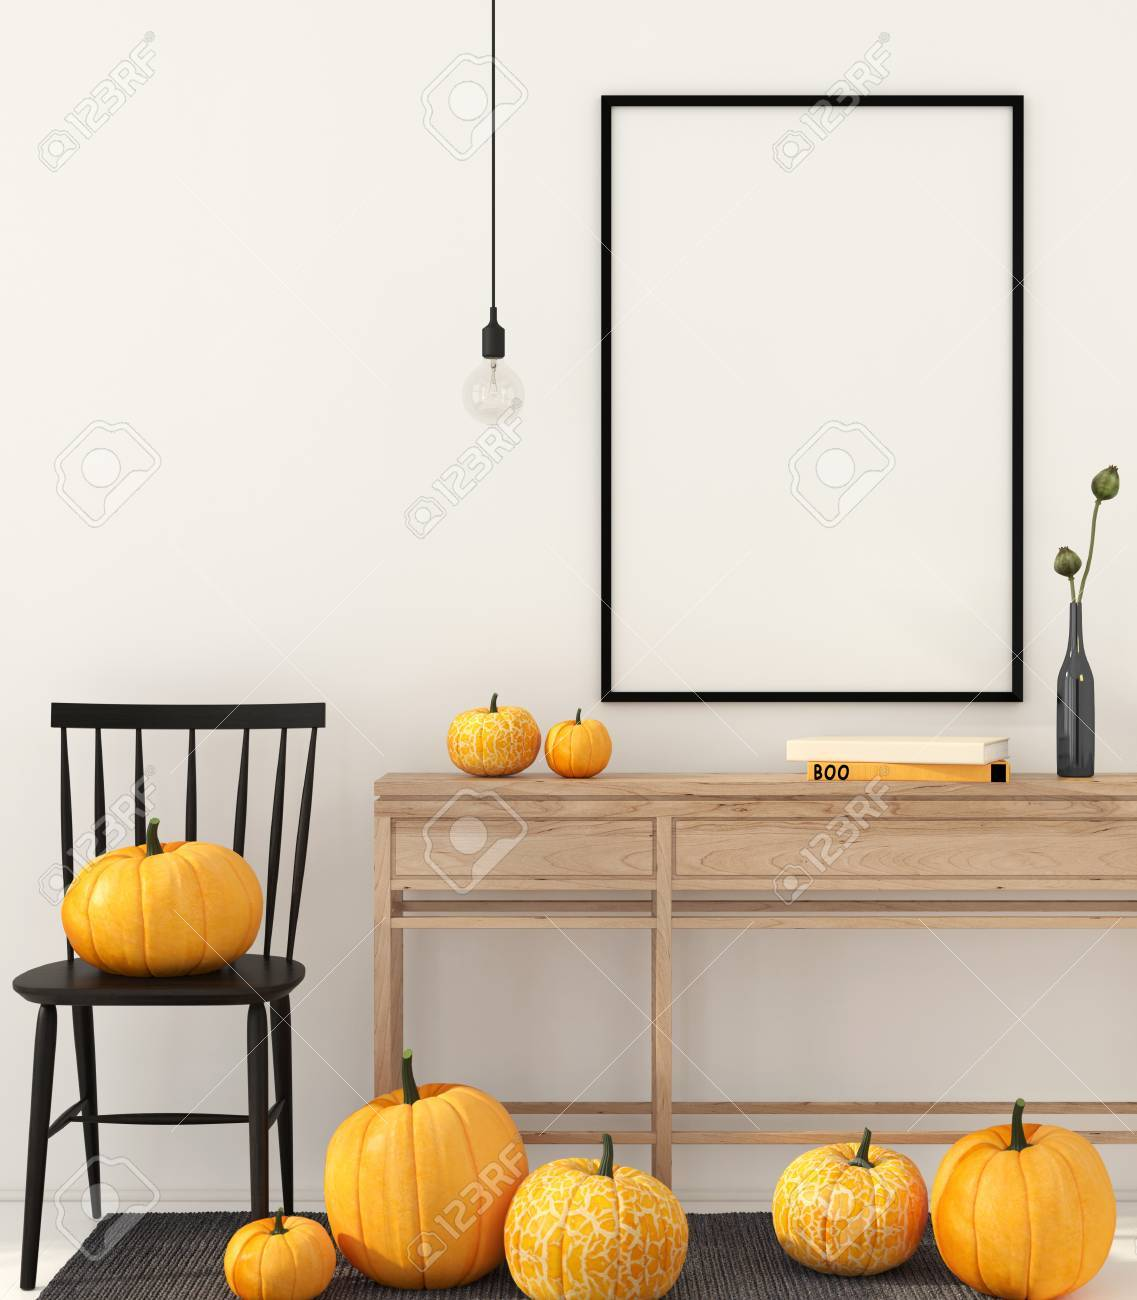 Halloween Decoration Interieur 3d Illustration Mock Up Interior With Autumn Decorations For